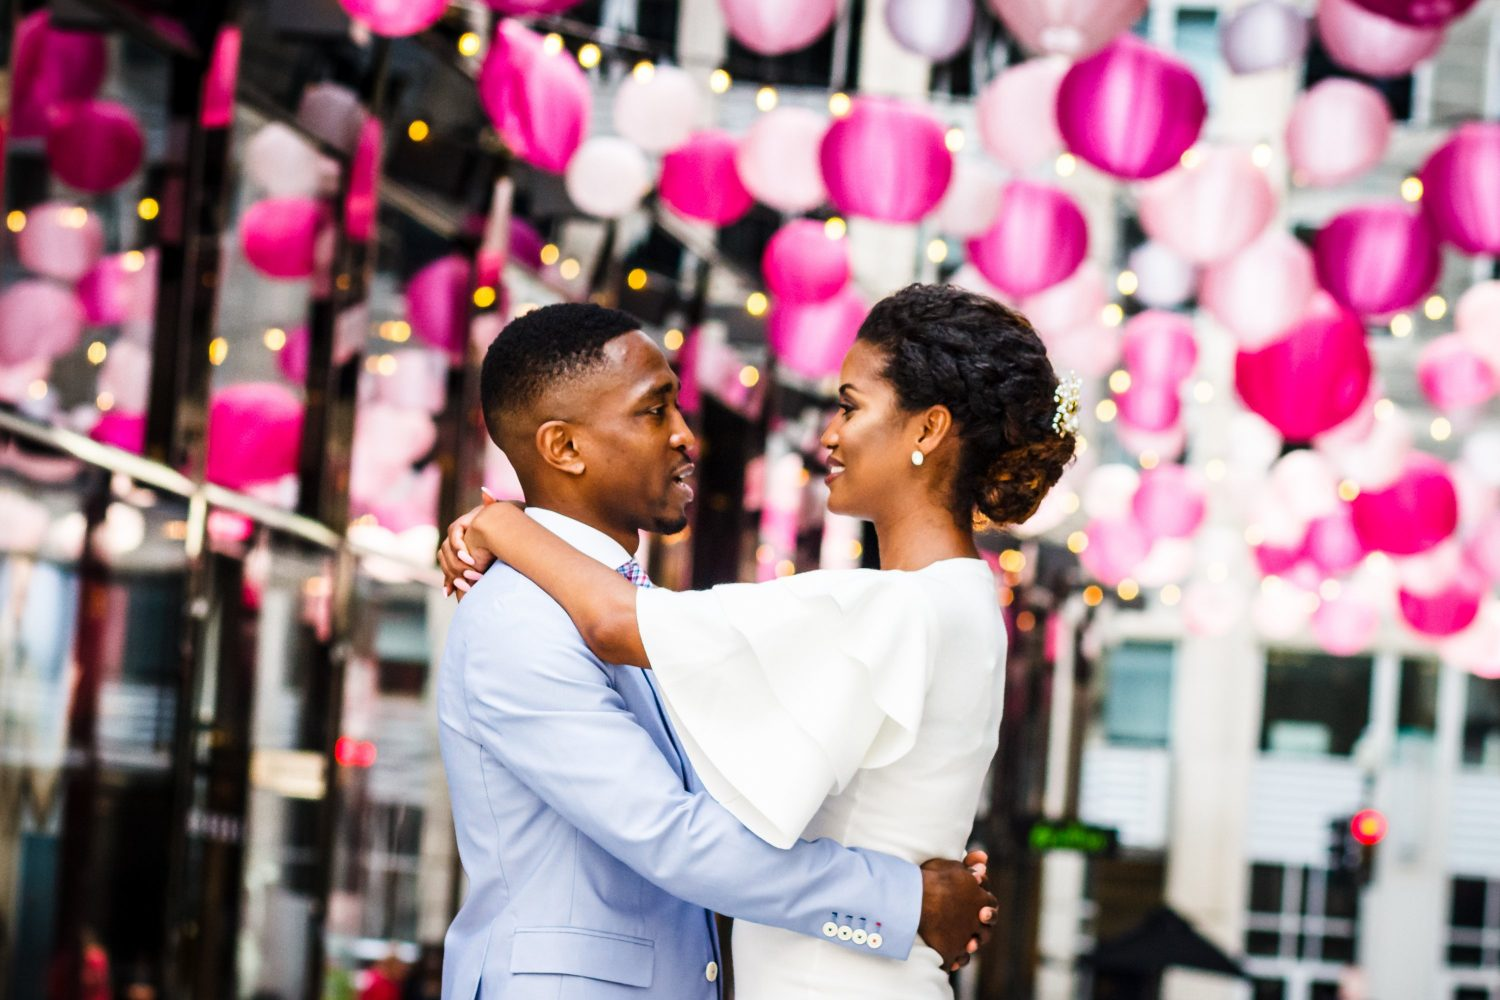 This Couple Eloped, Then Celebrated With Loves Ones With Dinner in Georgetown